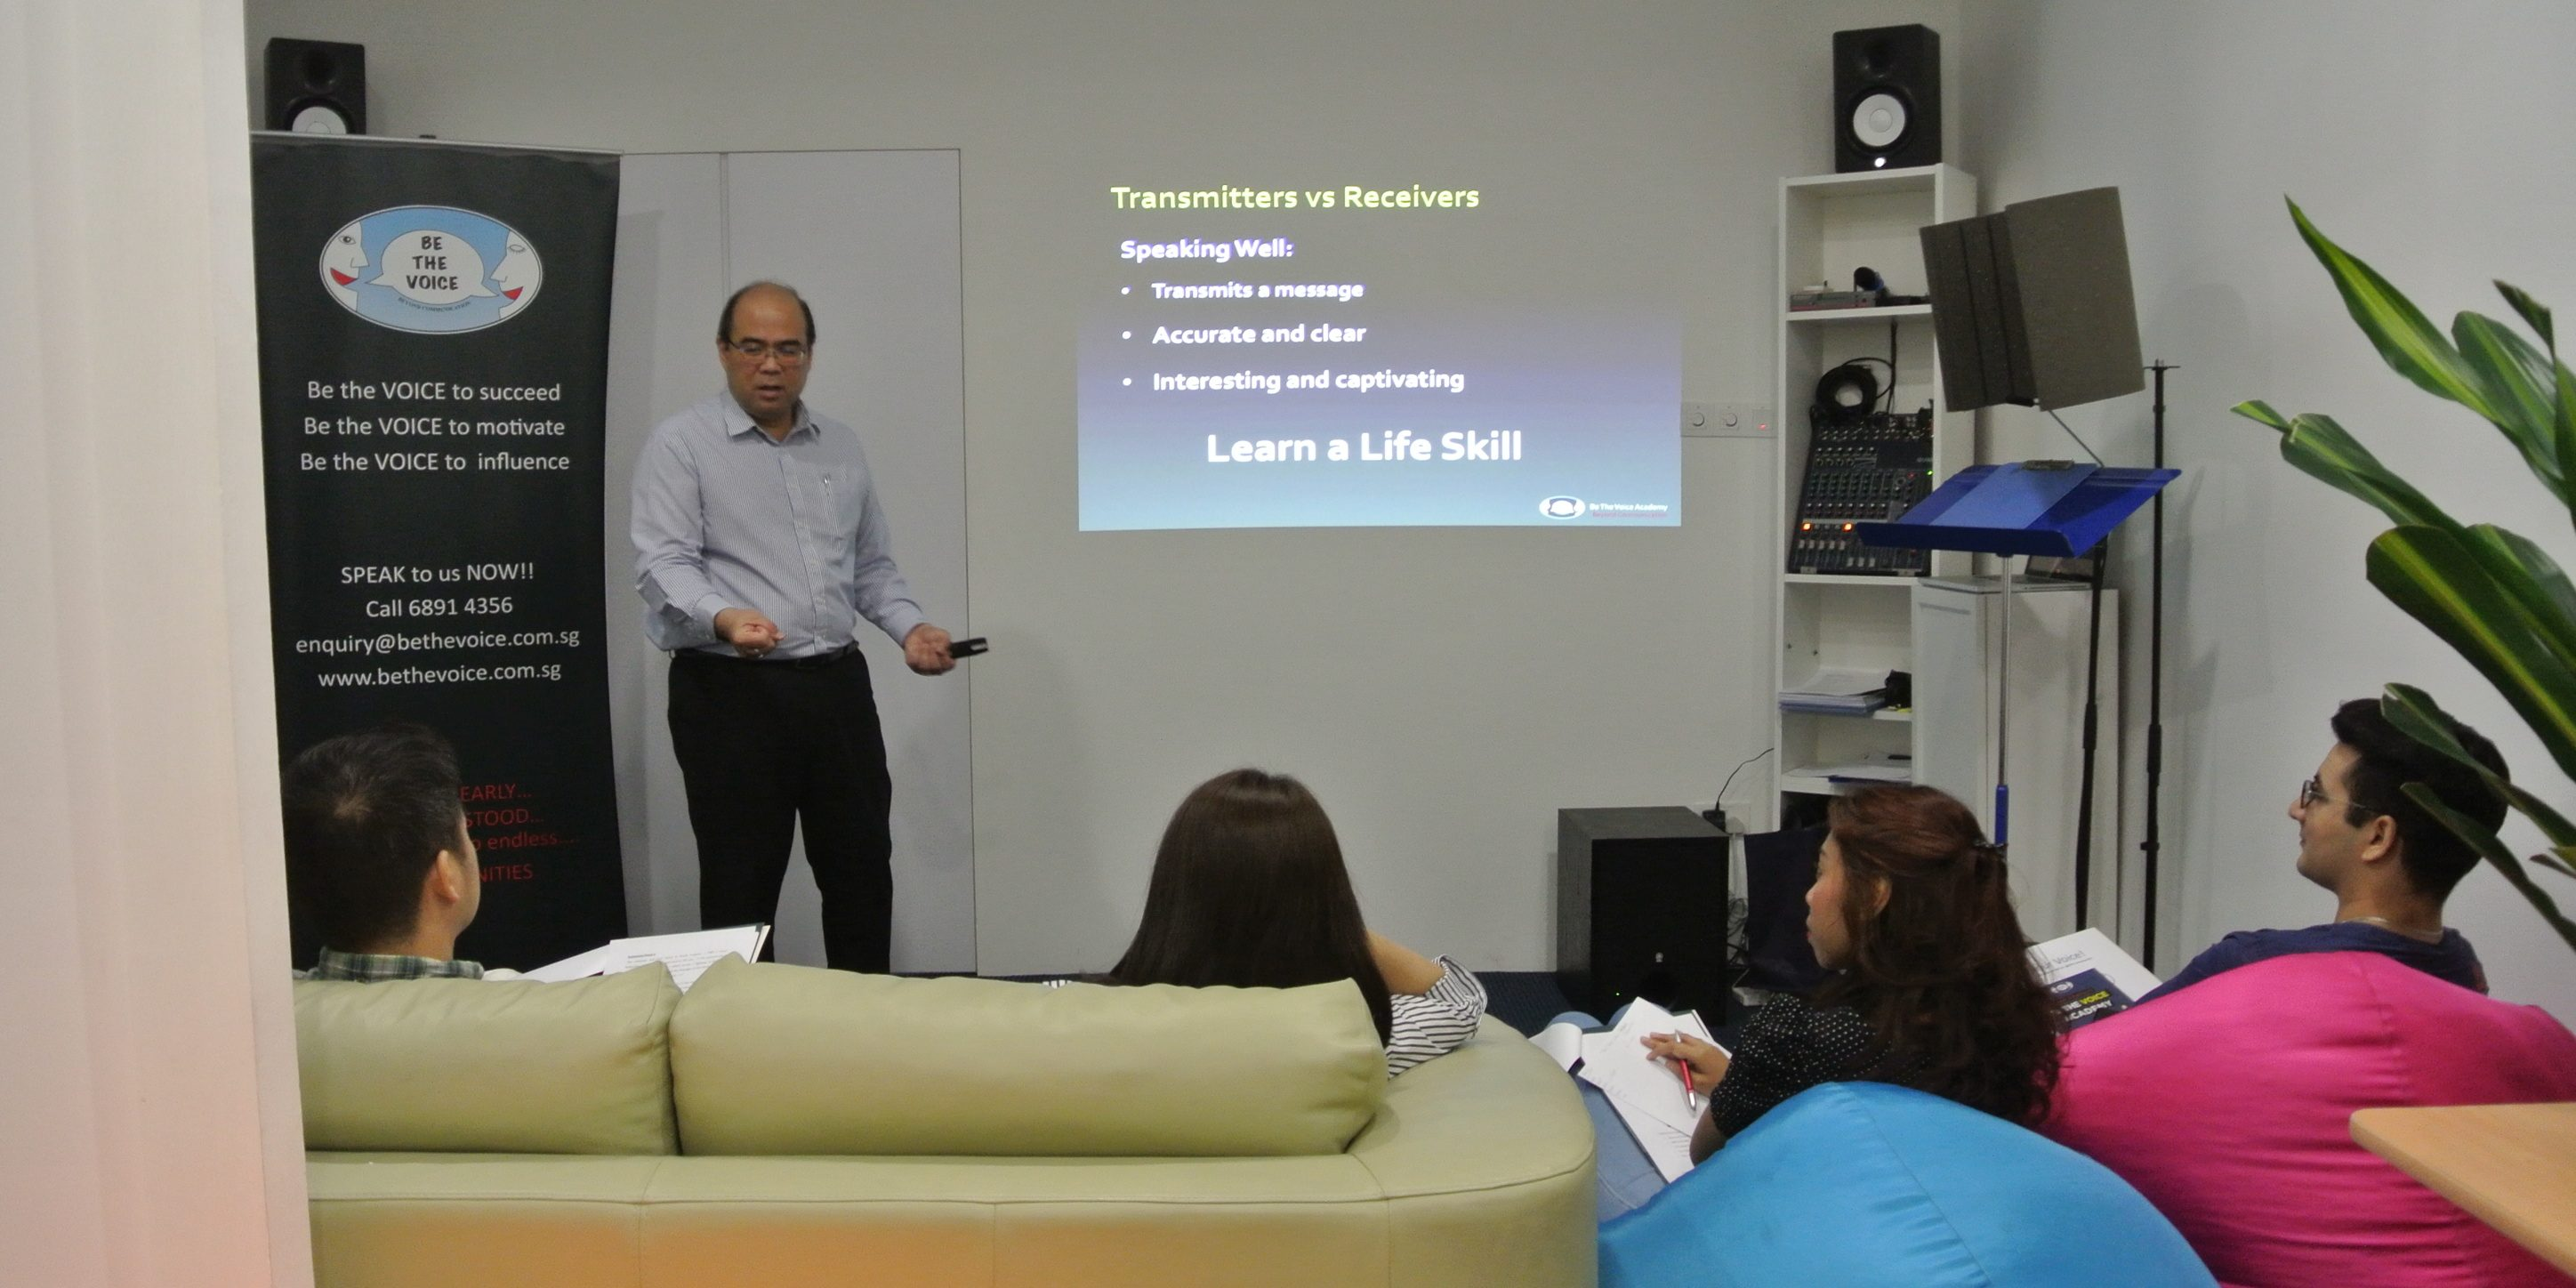 effective presentation skills training in singapore be the voice